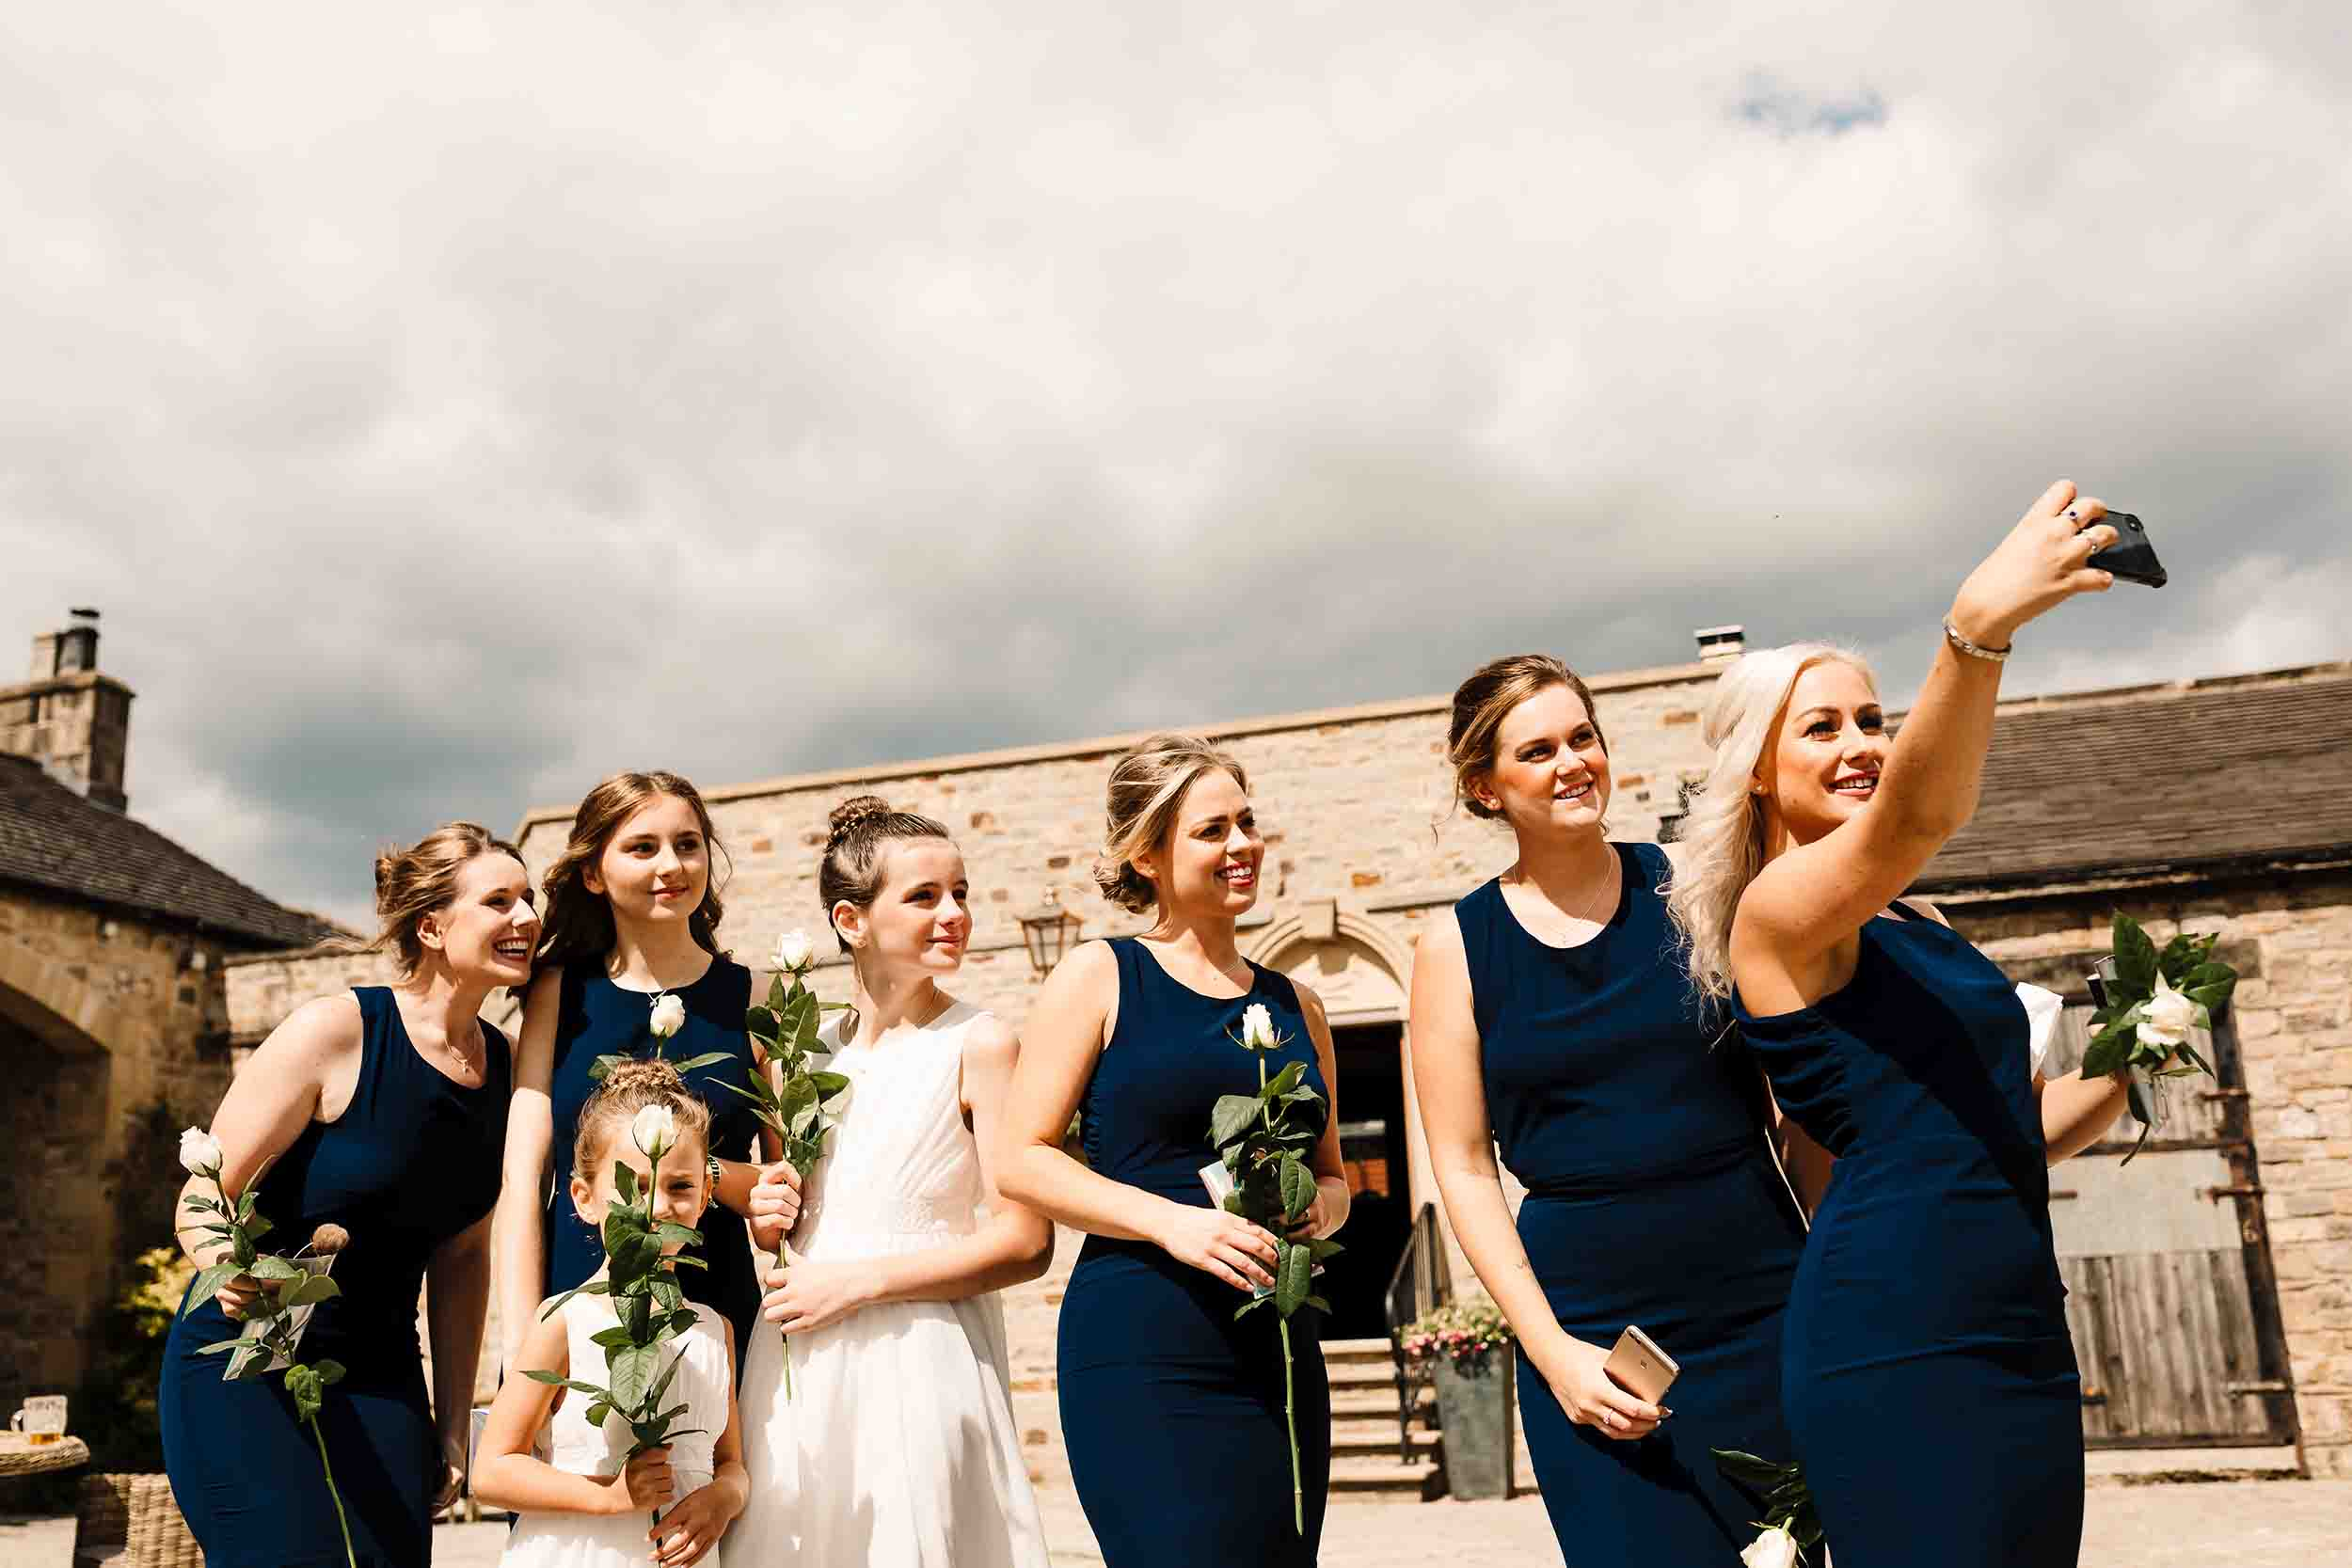 bridesmaids taking a selfie before a wedding ceremony